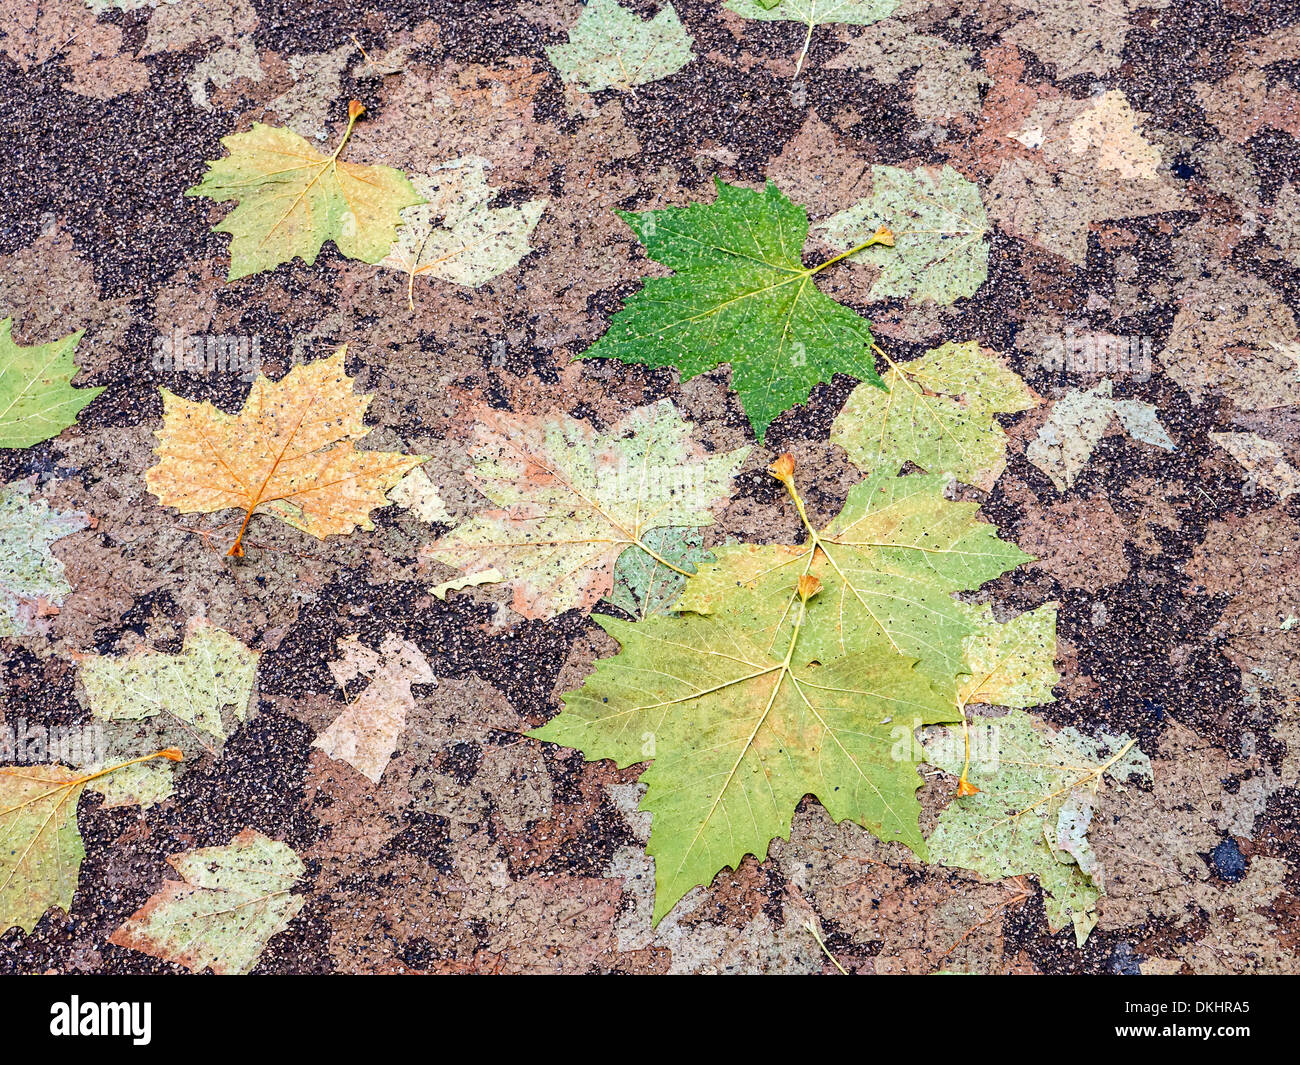 Squashed and flattened autumn leaves form a colourful pattern on a tarmac street - Stock Image